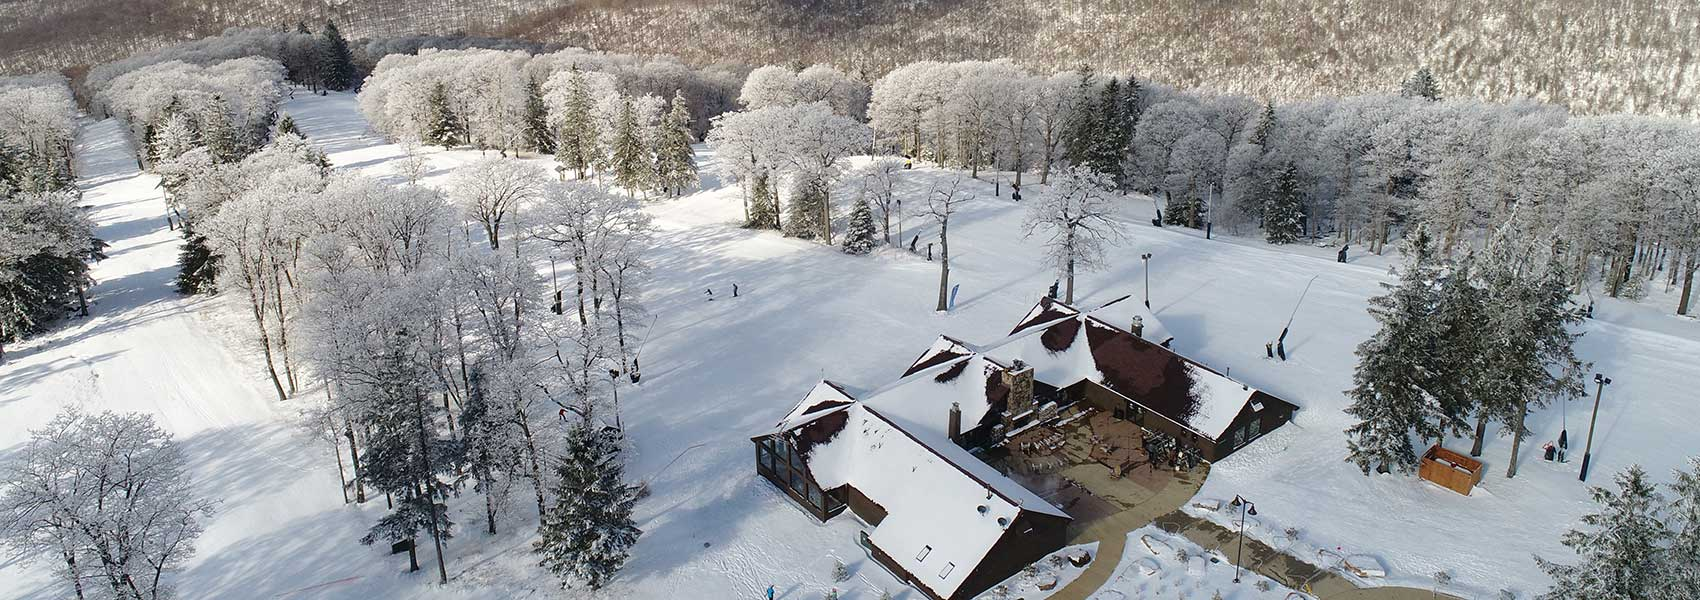 Aerial view of the Laurel Mountain lodge and slopes